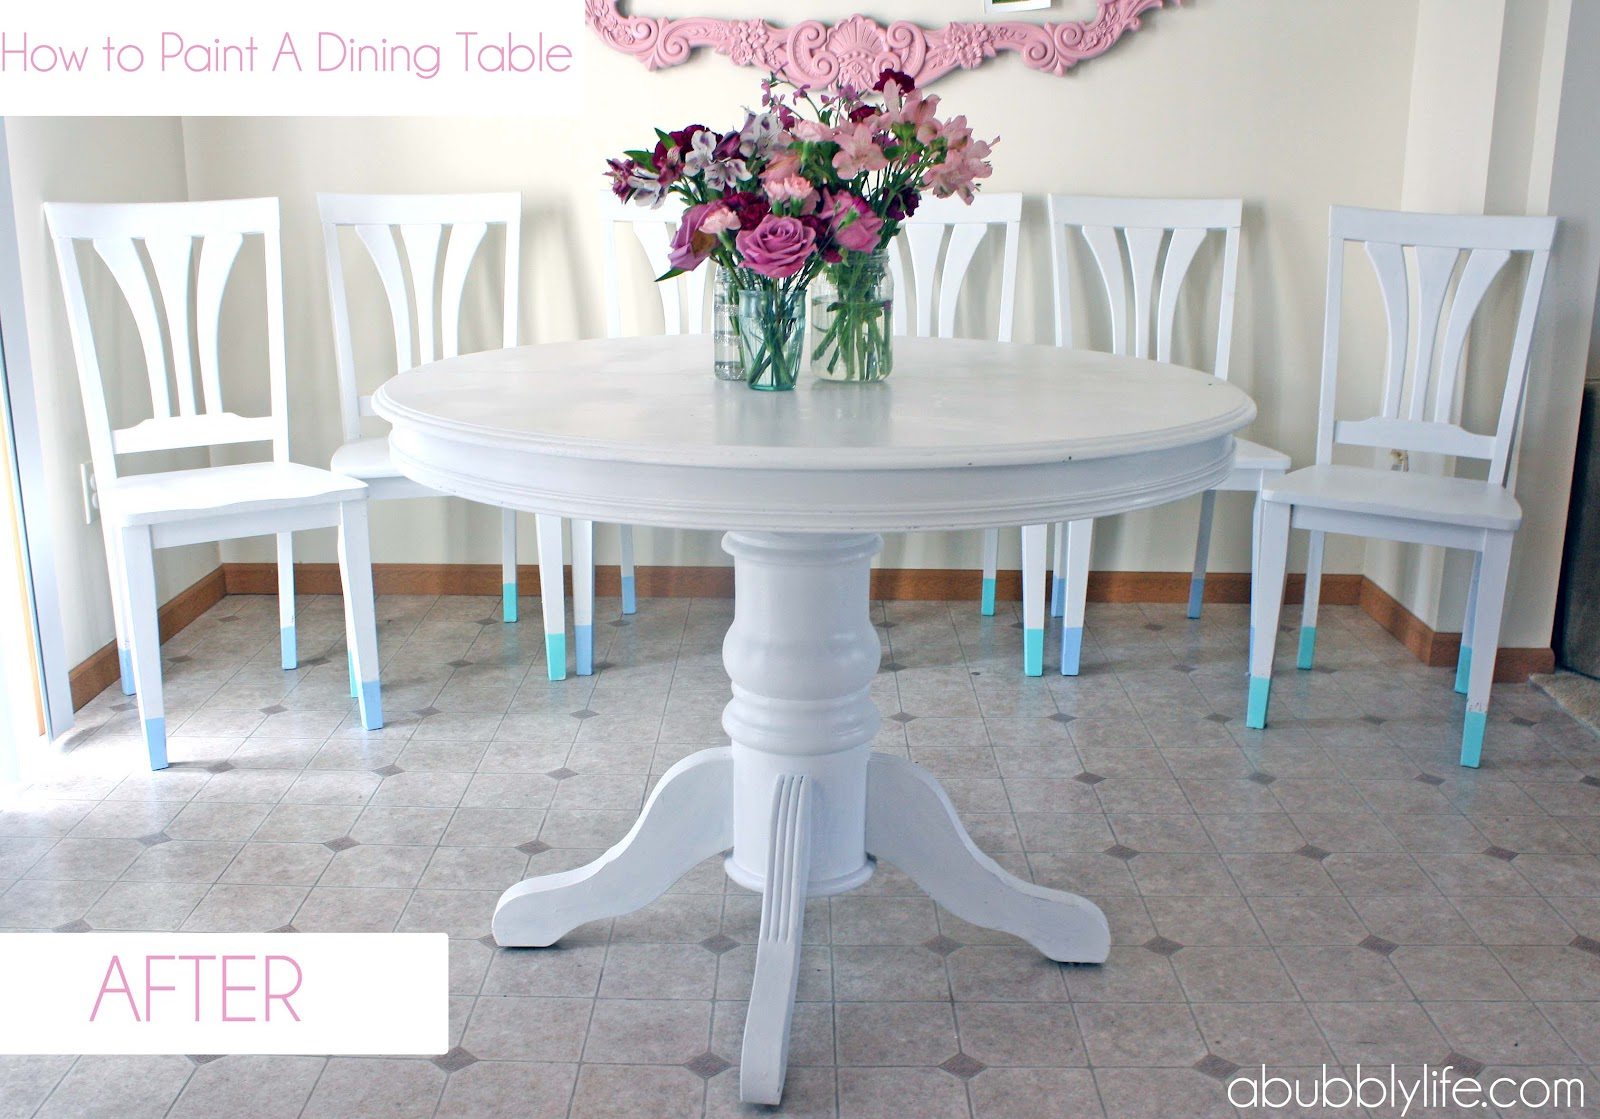 Ideas For Painting Dining Room Table And Chairs Part - 19: July 11, 2012